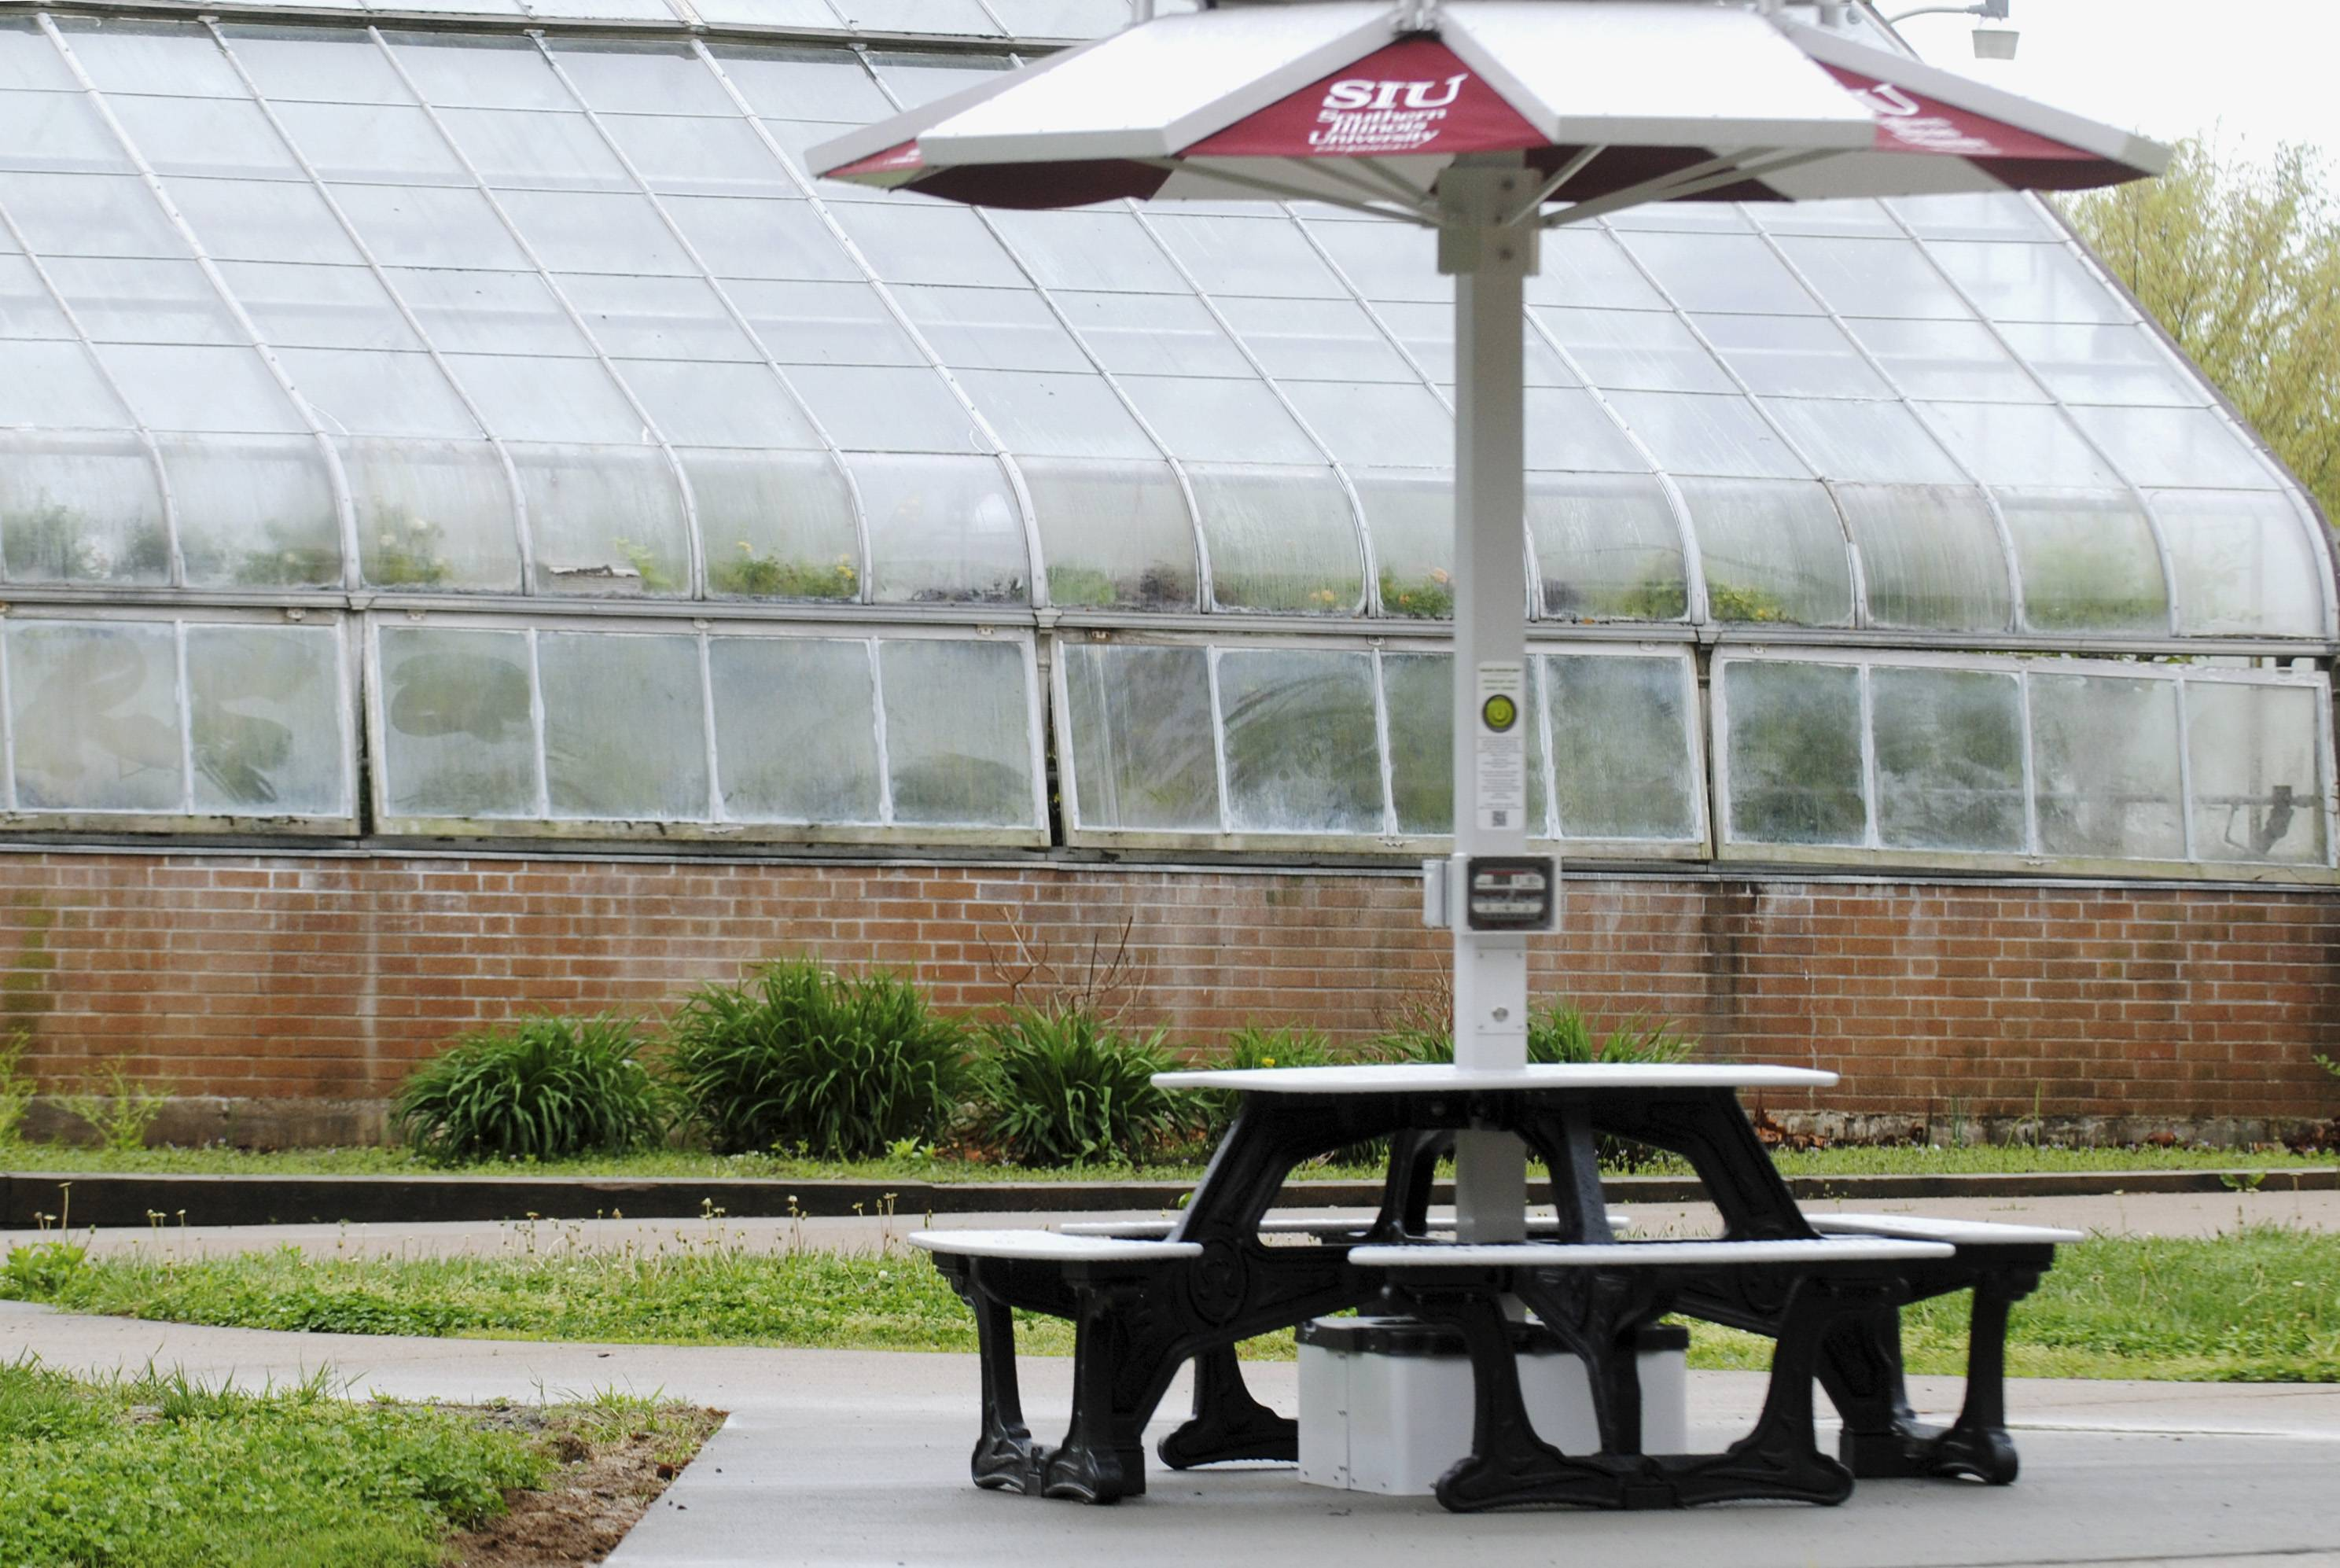 The solar-powered picnic table is near the Life Sciences building and greenhouse at the Southern Illinois University campus in Carbondale.